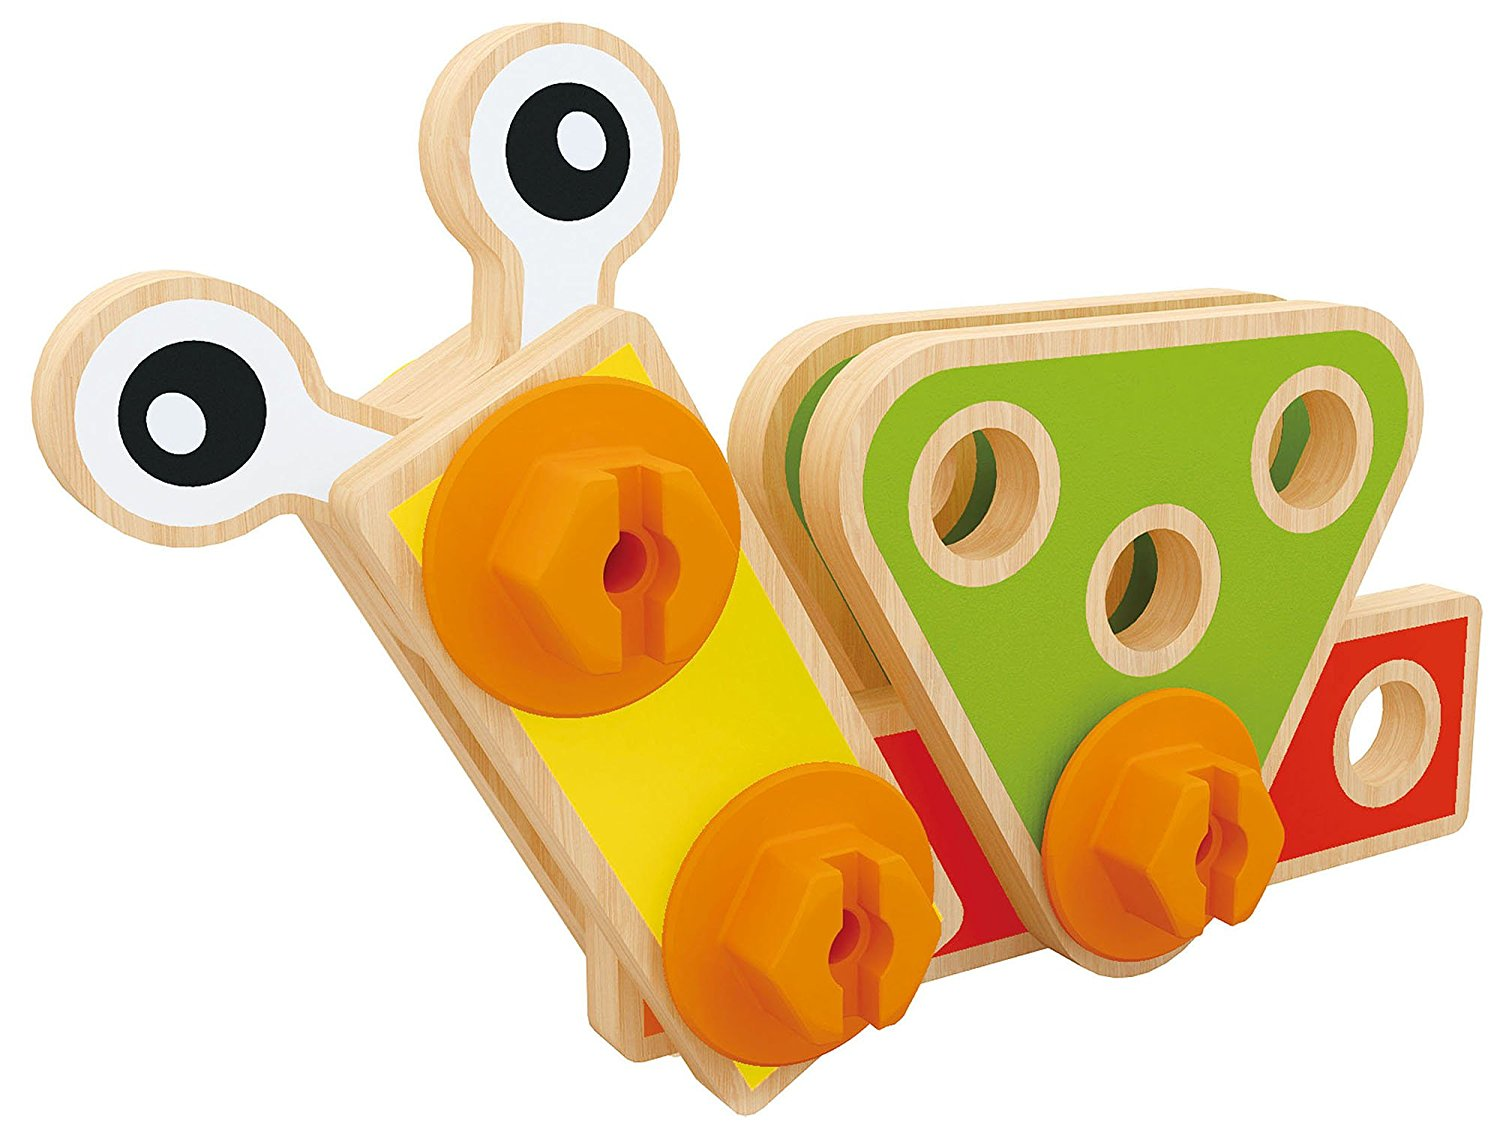 Hape Basic Builder Toddler Wooden Play Set - WoodenToys.com